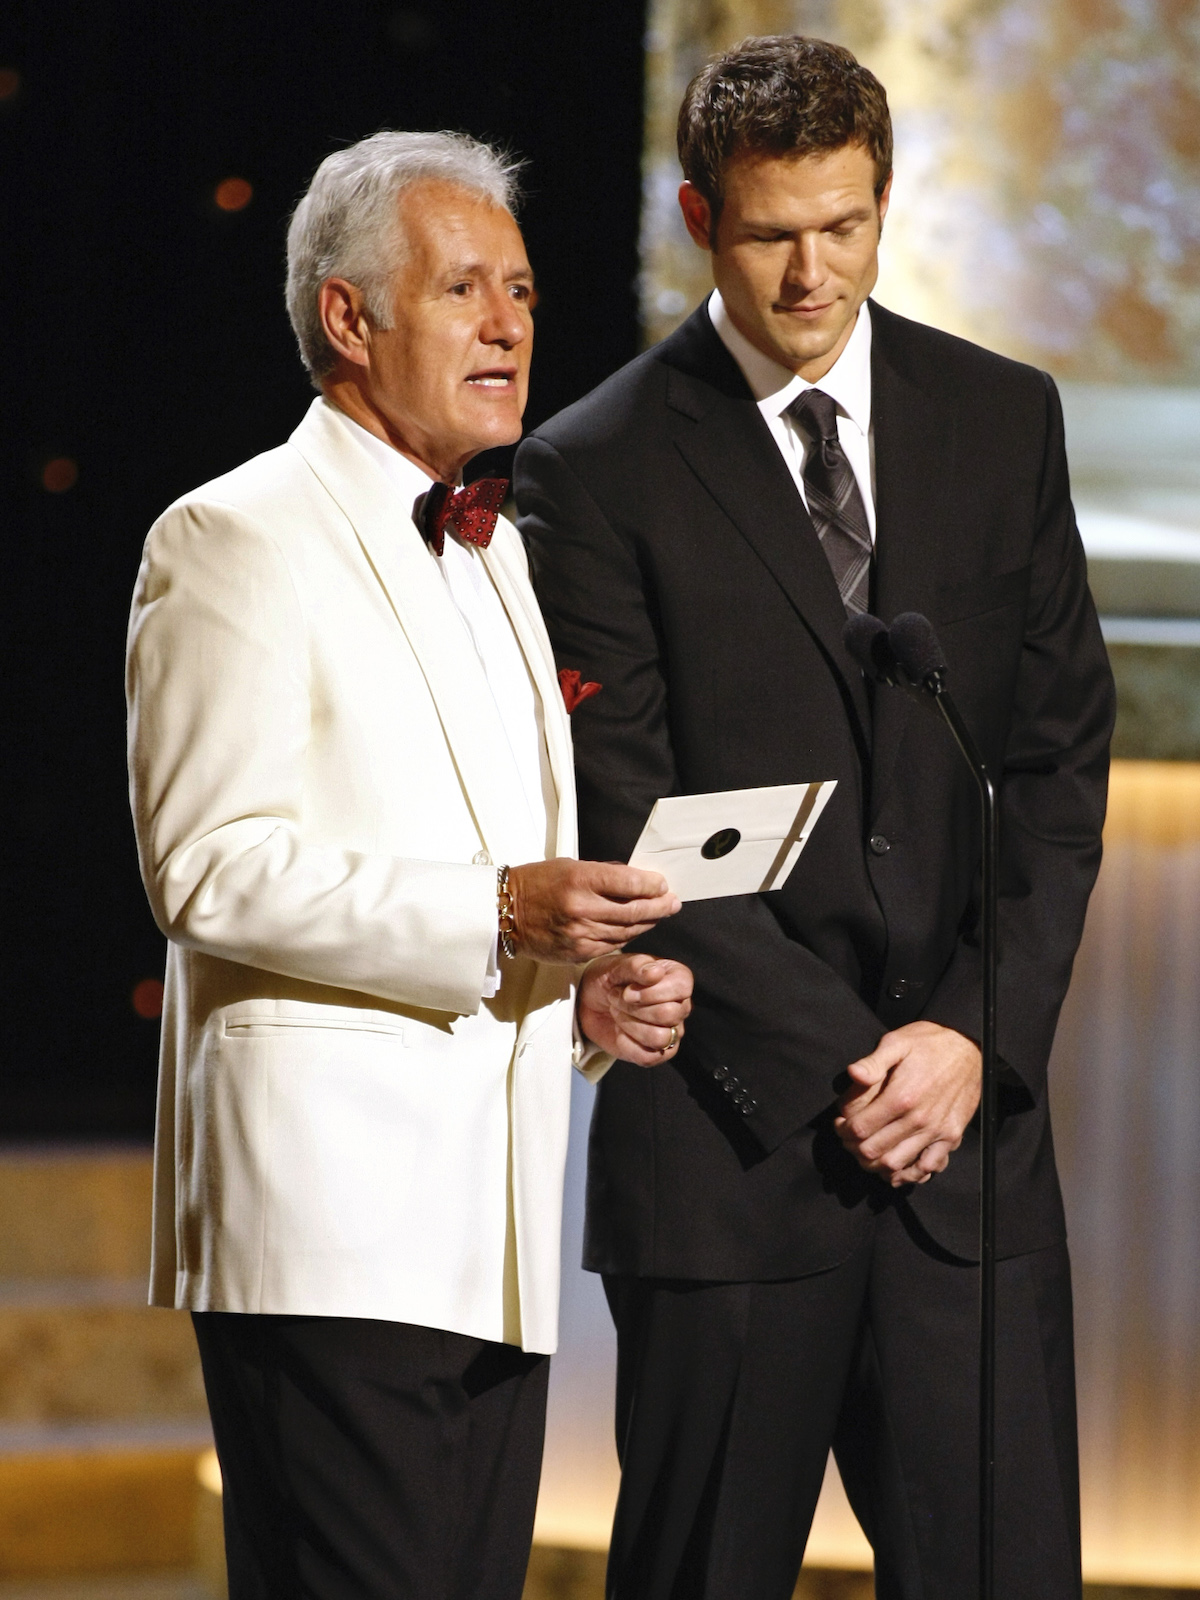 Game show host Alex Trebek (L) and television personality Dr. Travis Stork present an award at the 36th Annual Daytime Emmy Awards at the Orpheum Theatre in Los Angeles, August 30, 2009. REUTERS/Danny Moloshok